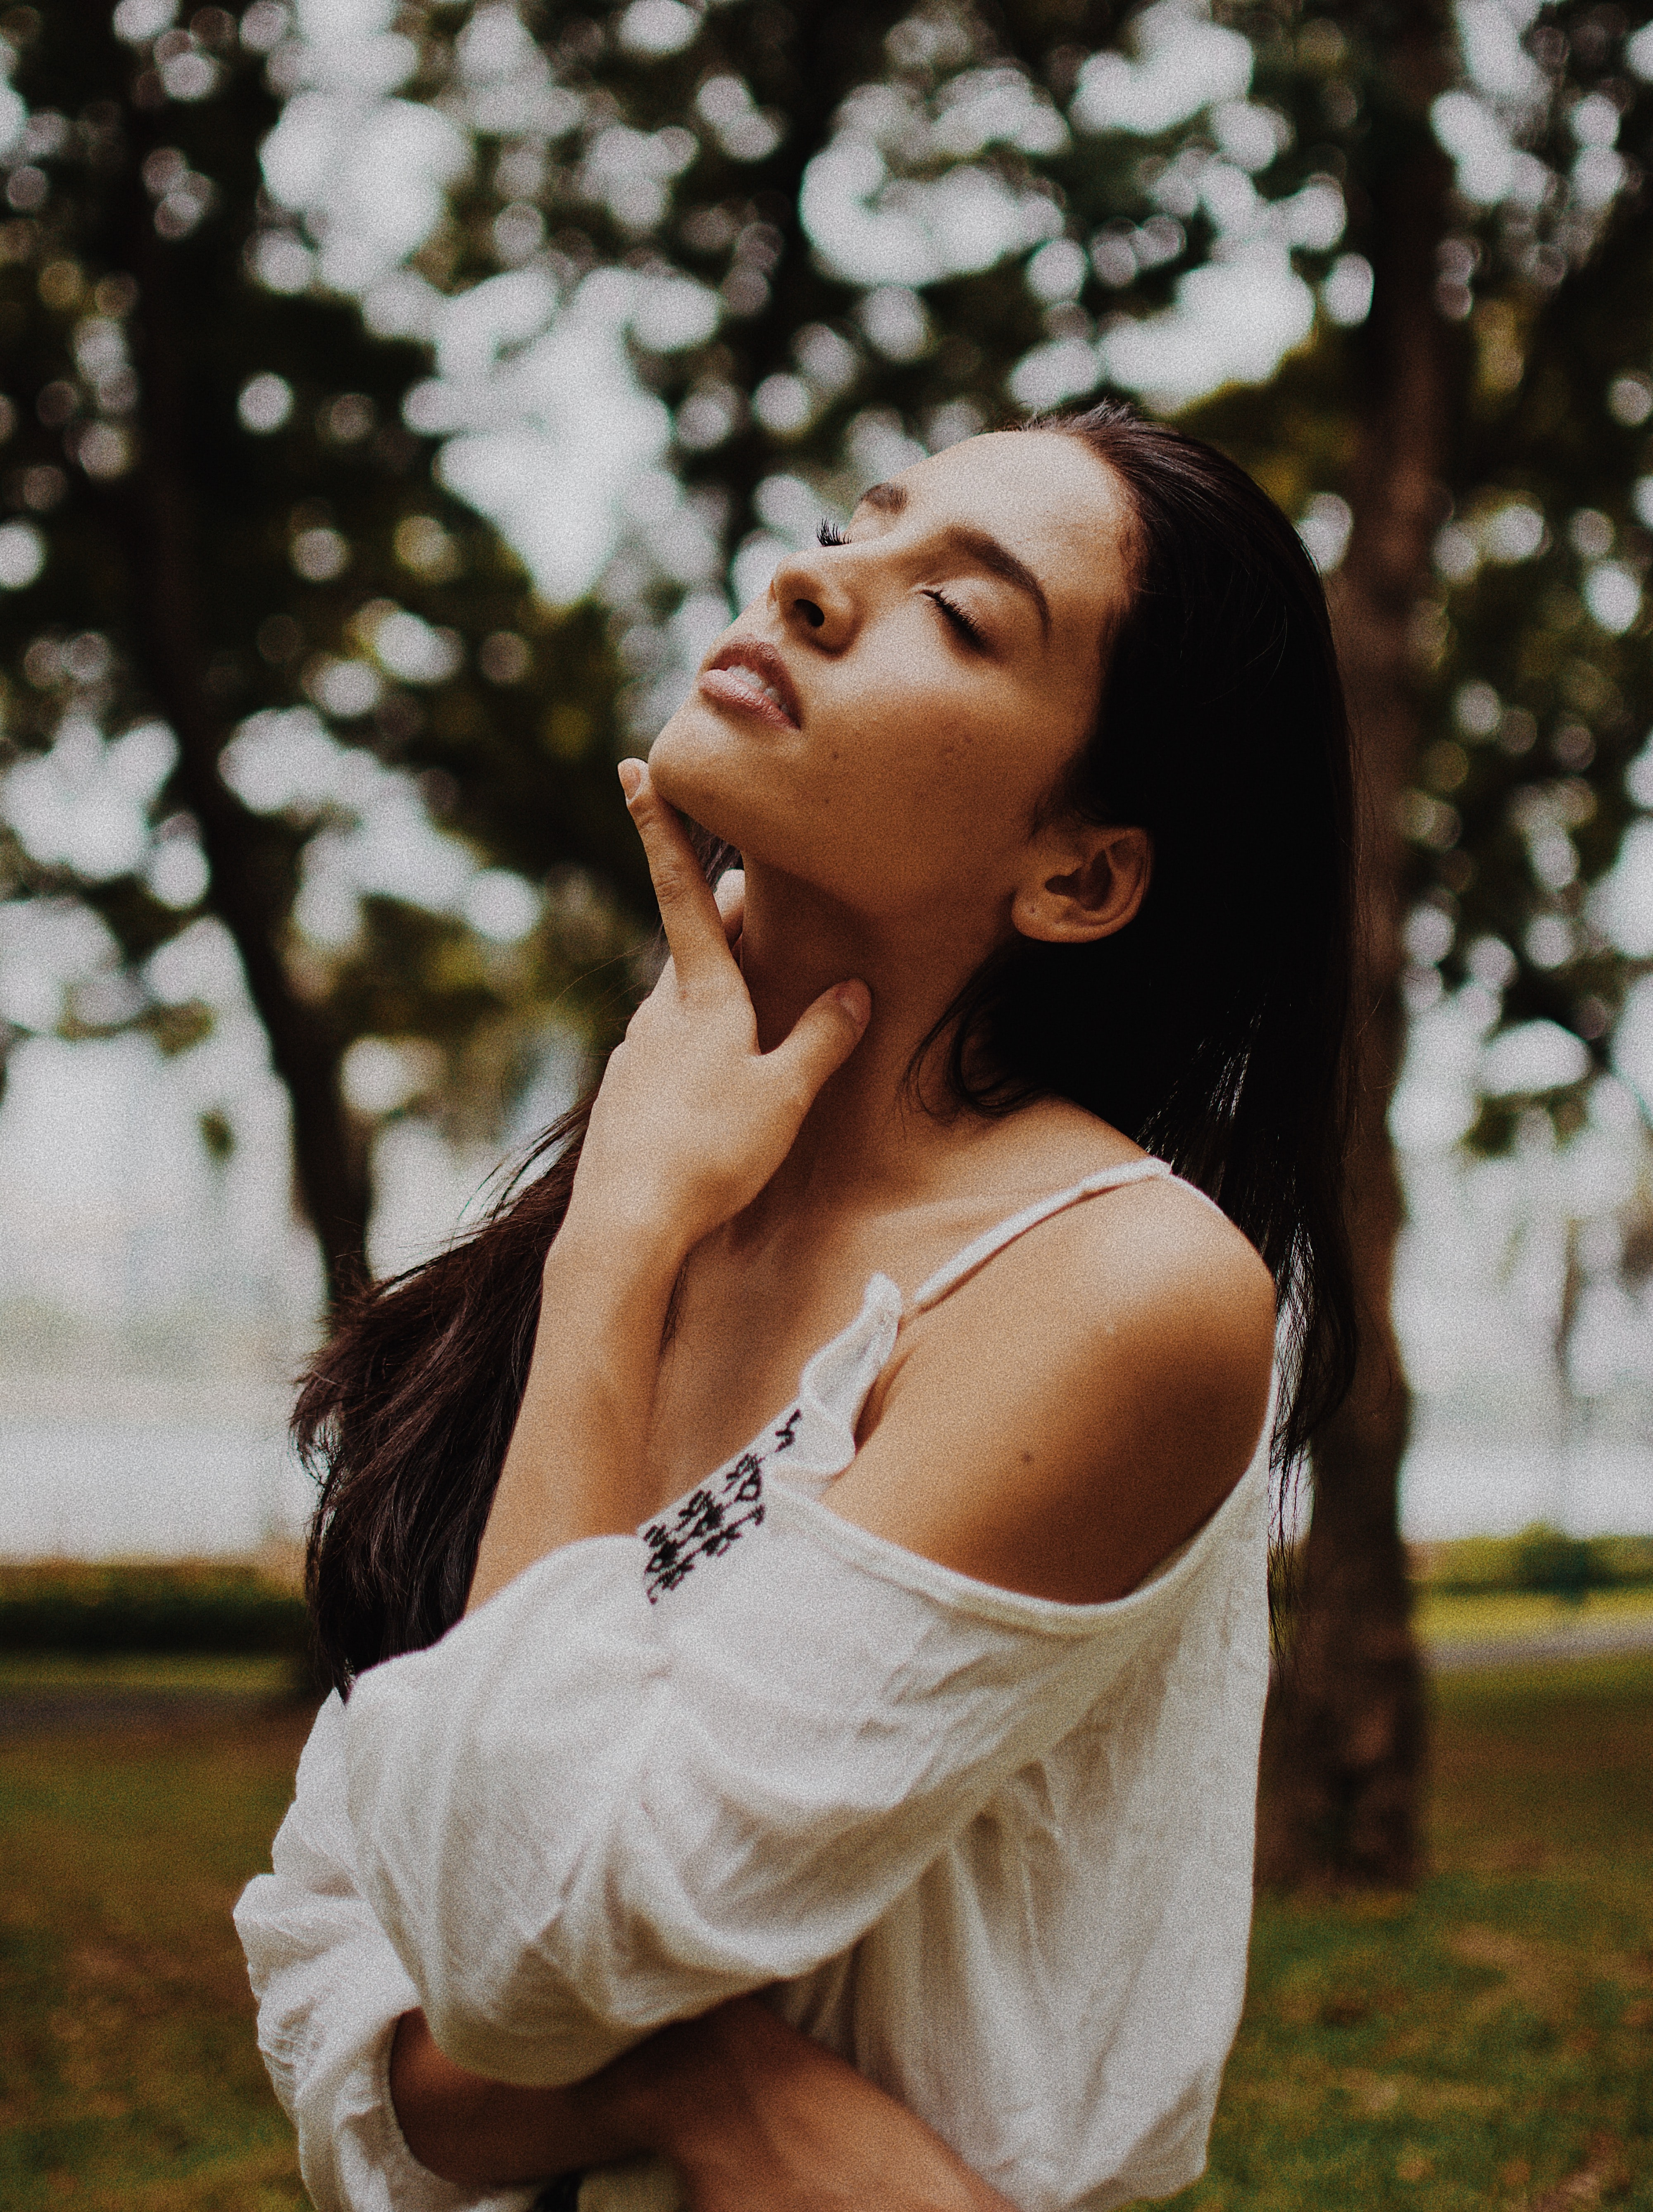 shallow focus photography on woman in white cold-shoulder top